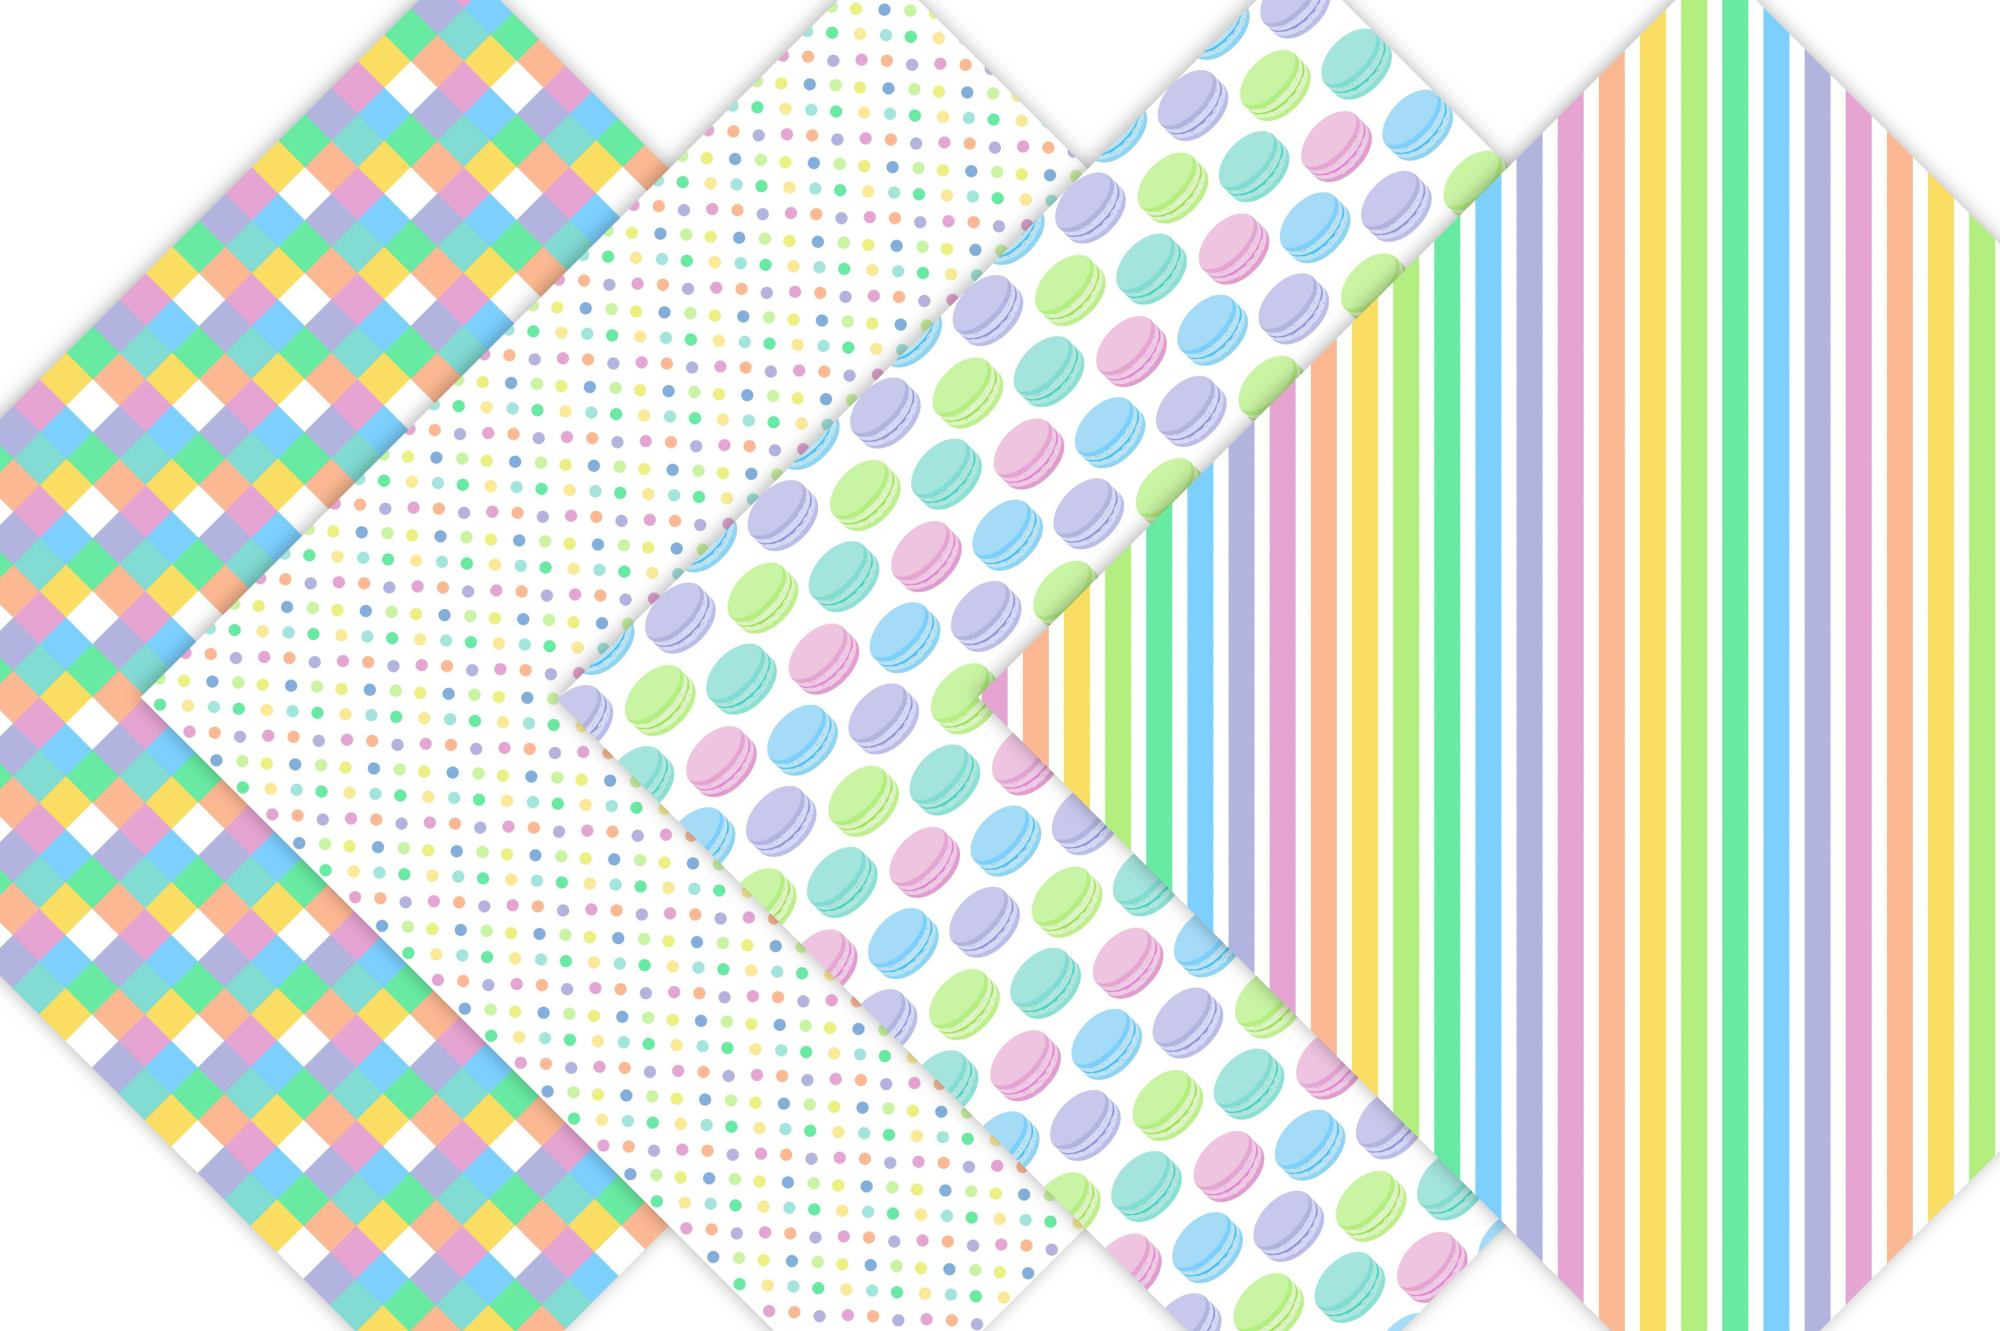 Candy Pattern Backgrounds example image 3